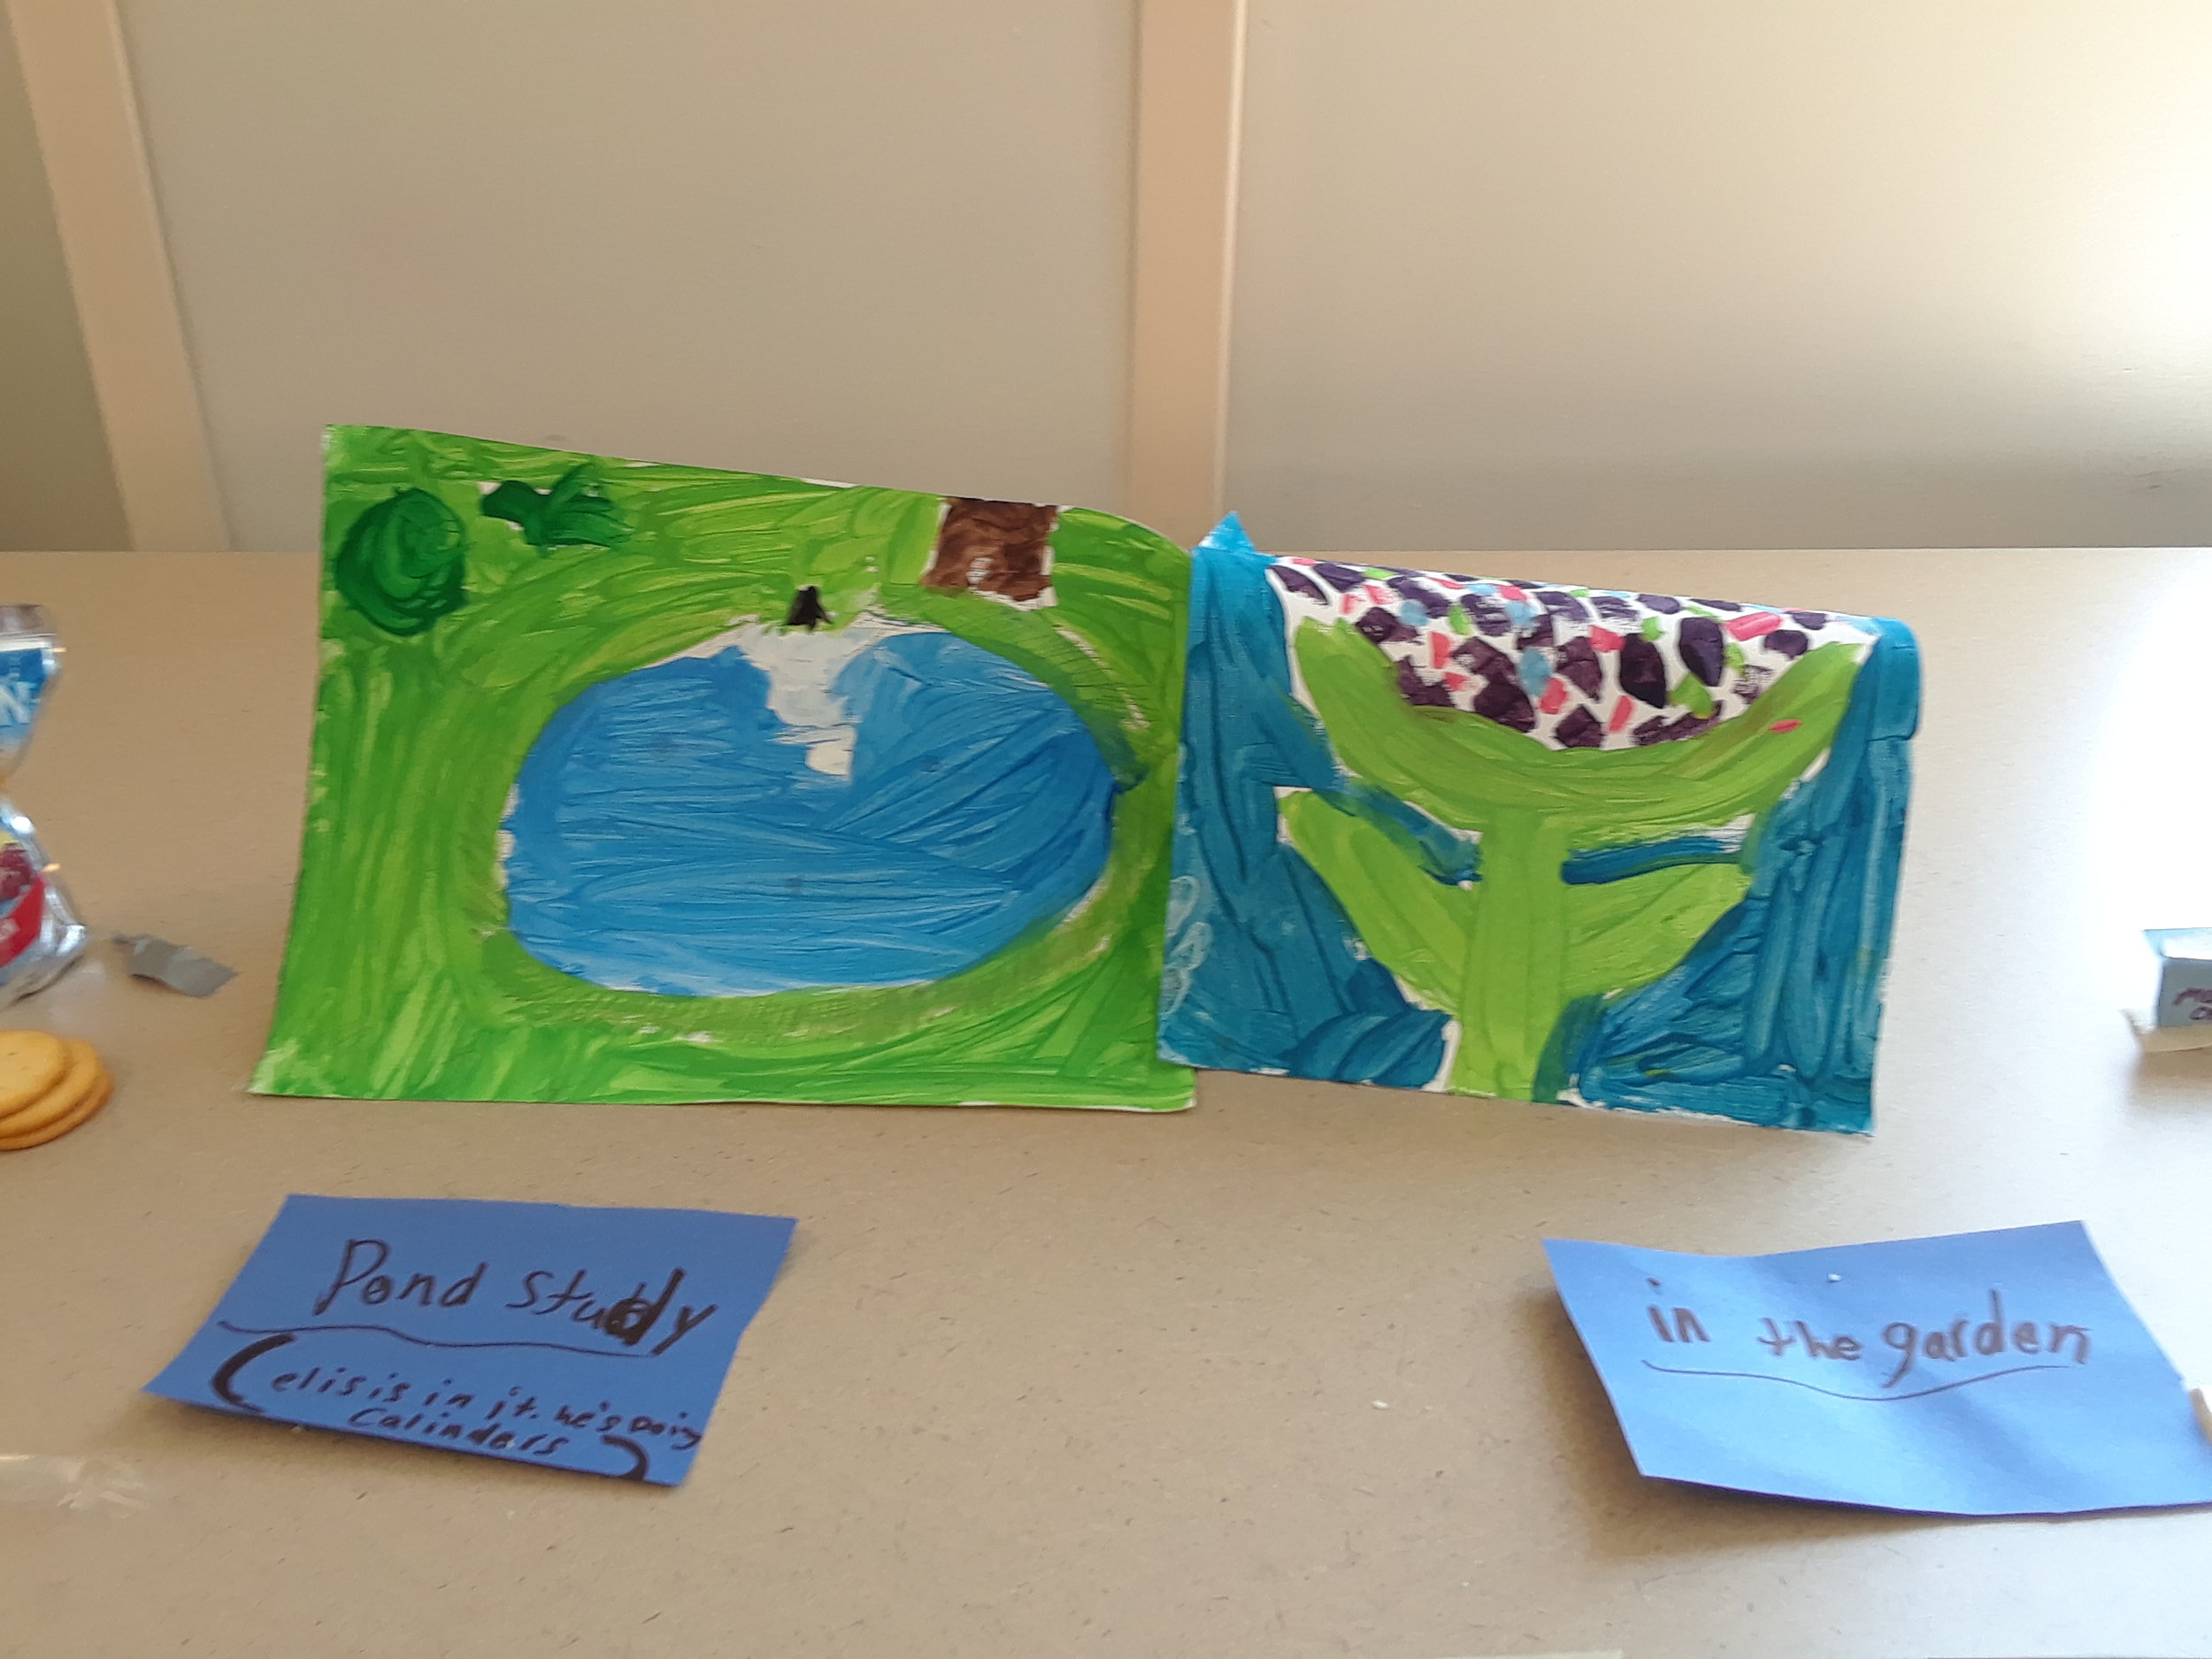 Paintings of Consecration Dell and spring flower.